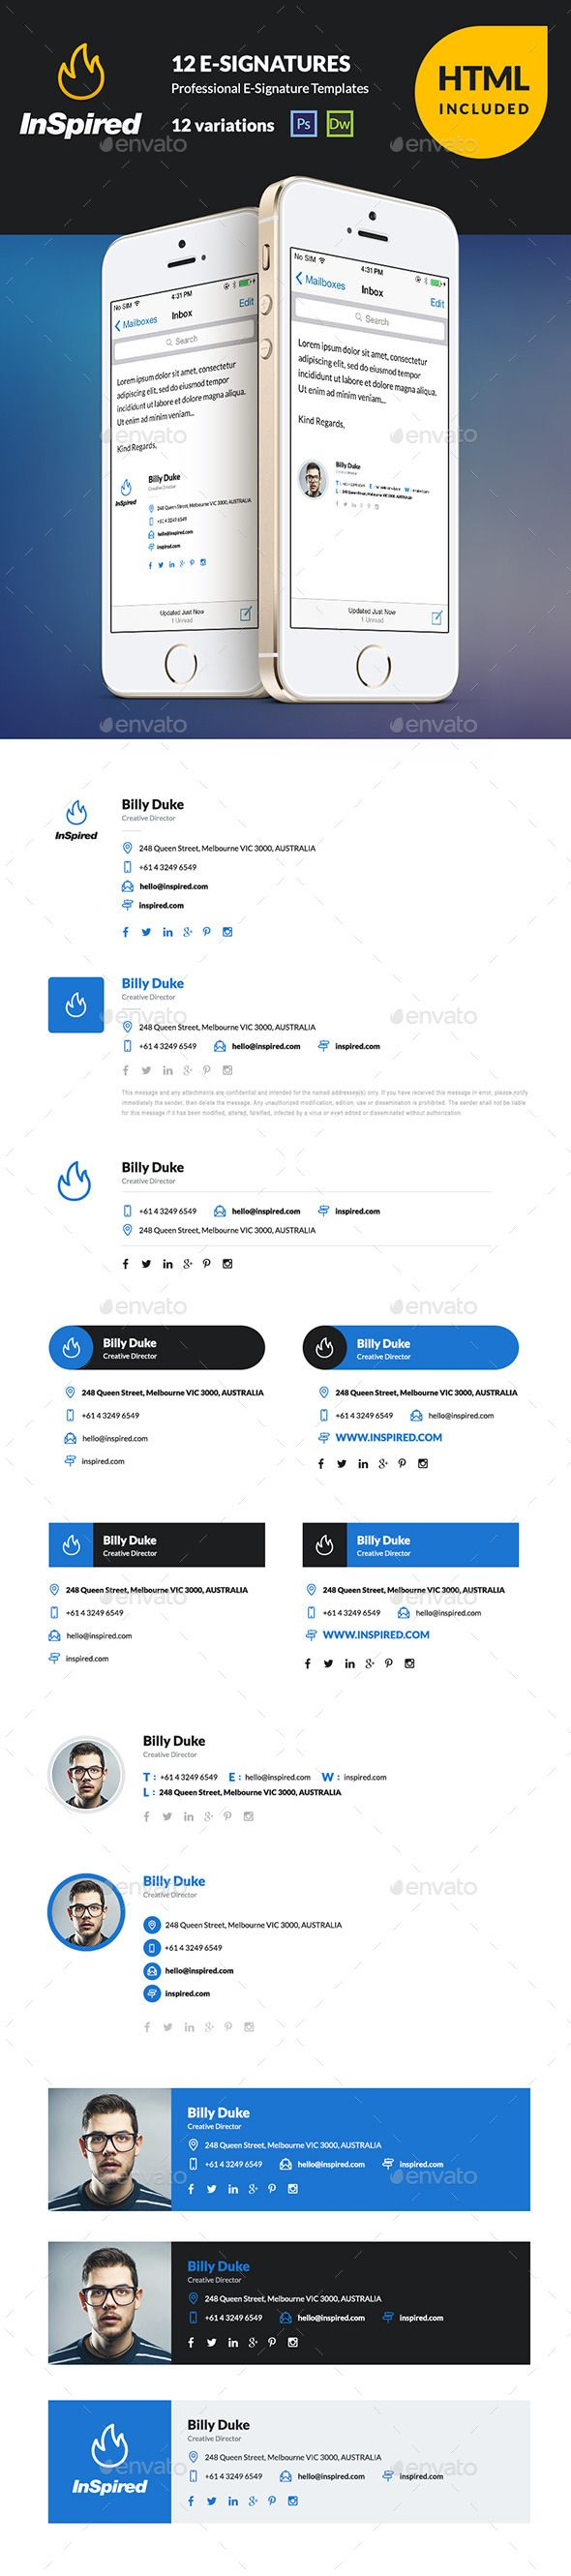 InSpired 12 HTML Professional ESignatures Template PSD